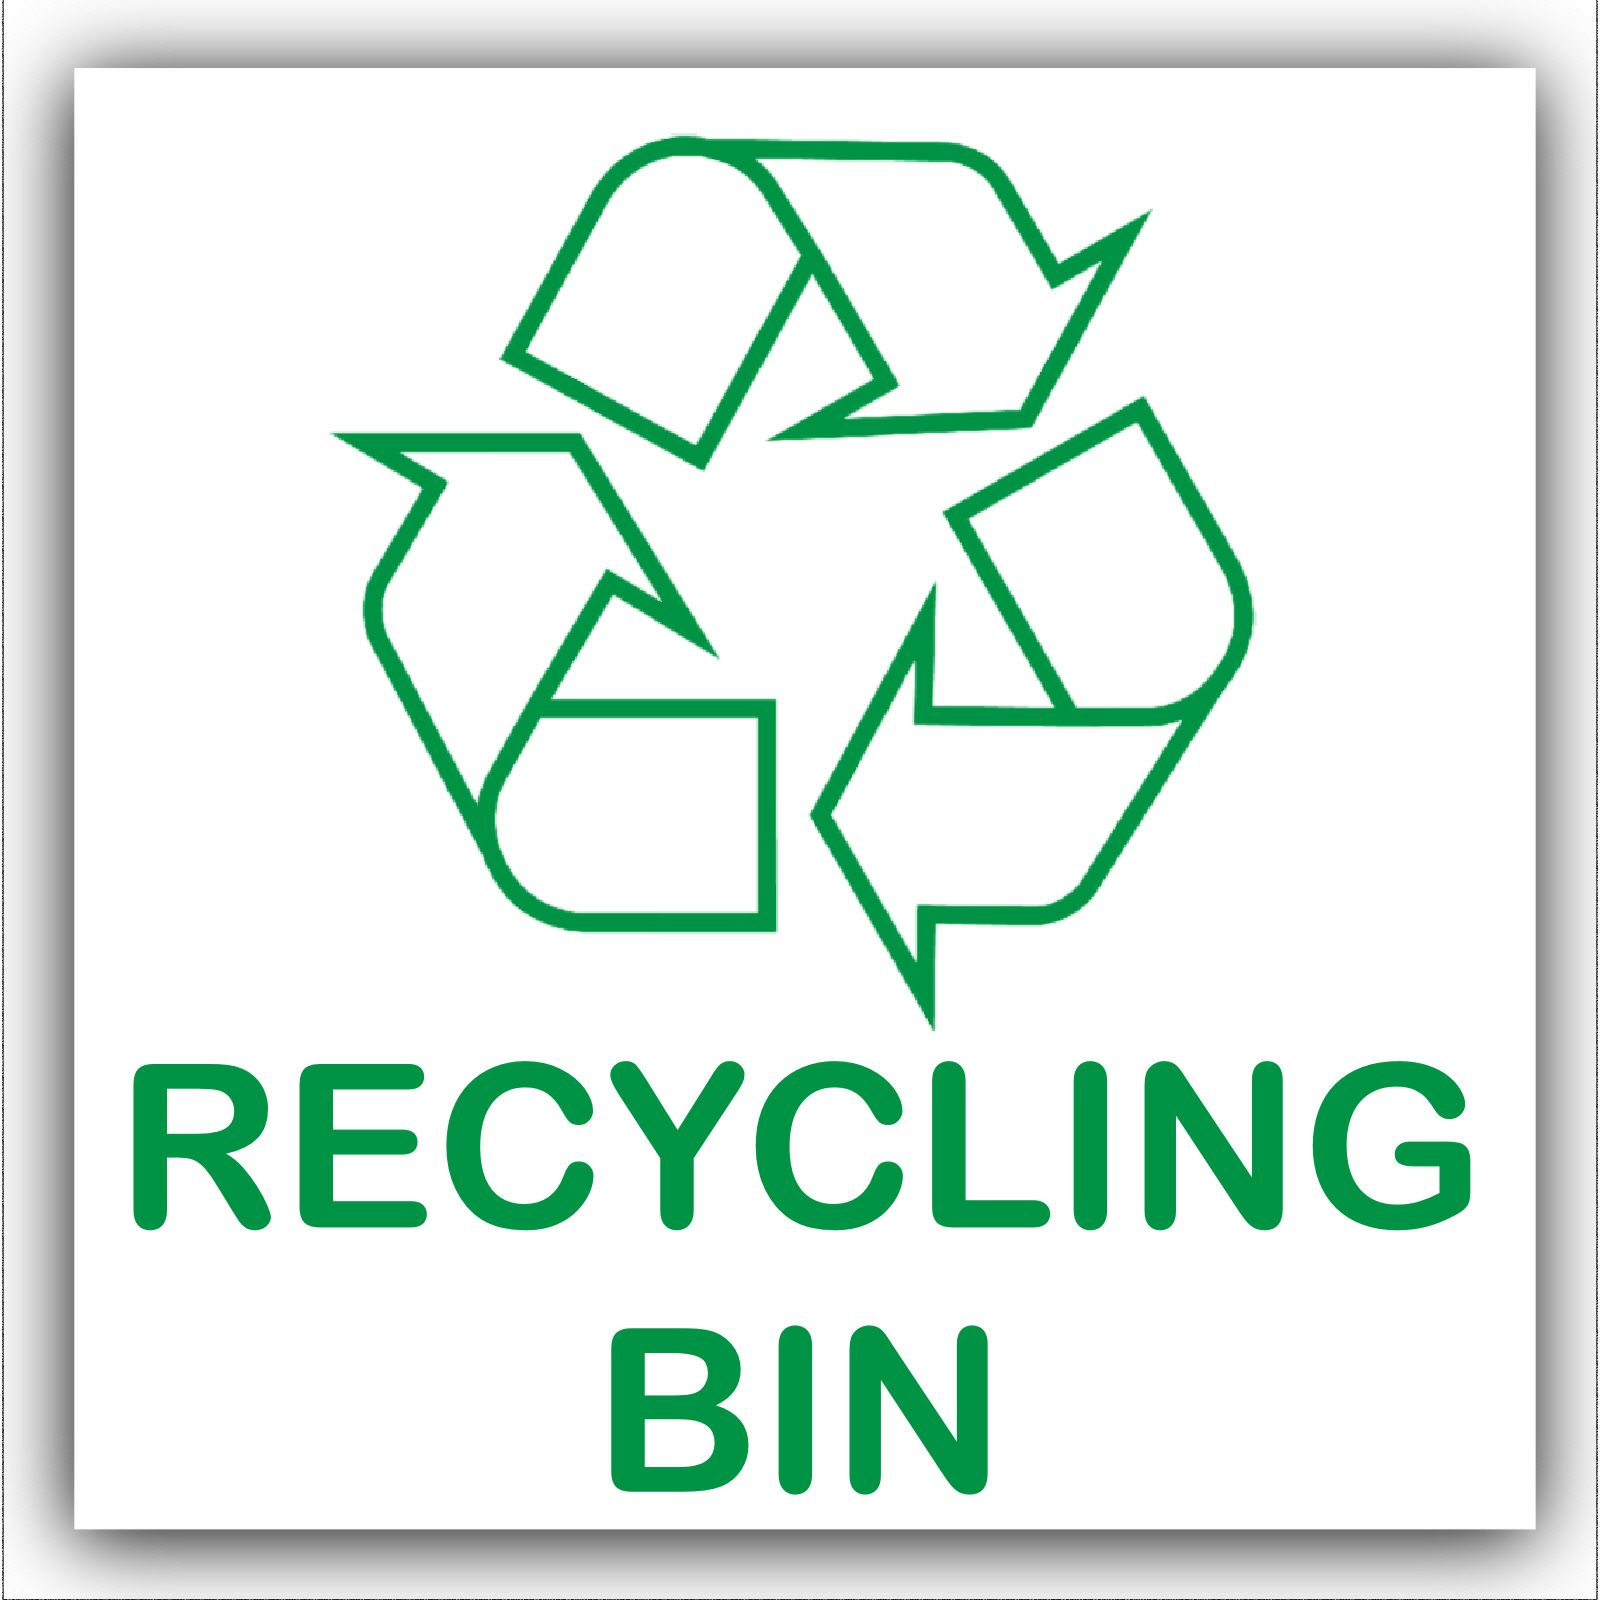 1 X Recycling Bin Self Adhesive Sticker Recycle Logo Sign